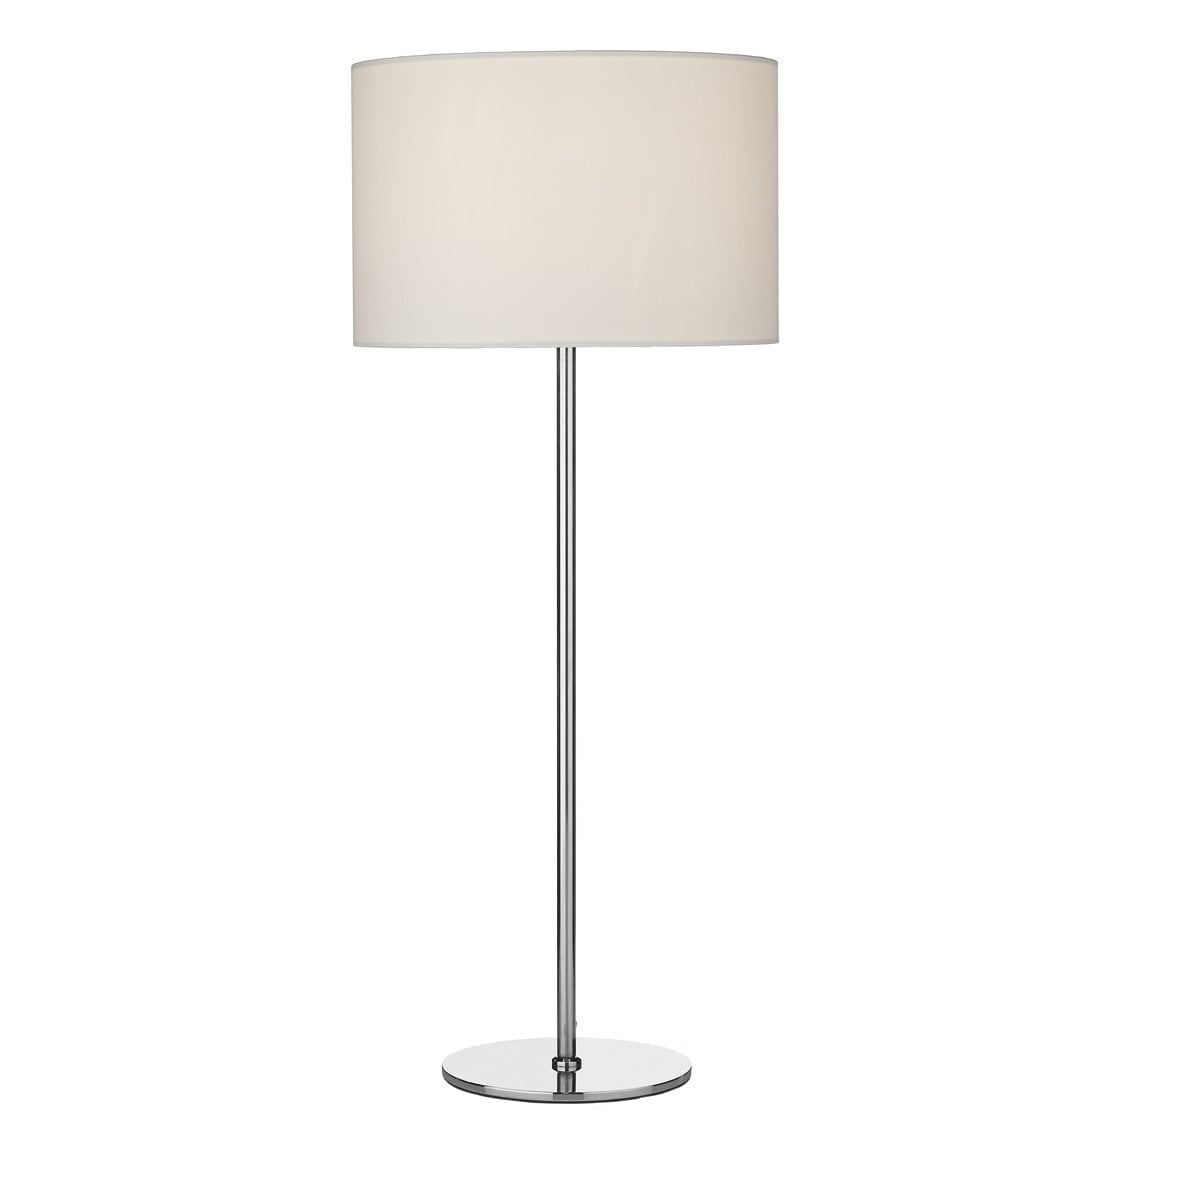 Dar RIM4246 Rimini 1lt, Satin Chrome